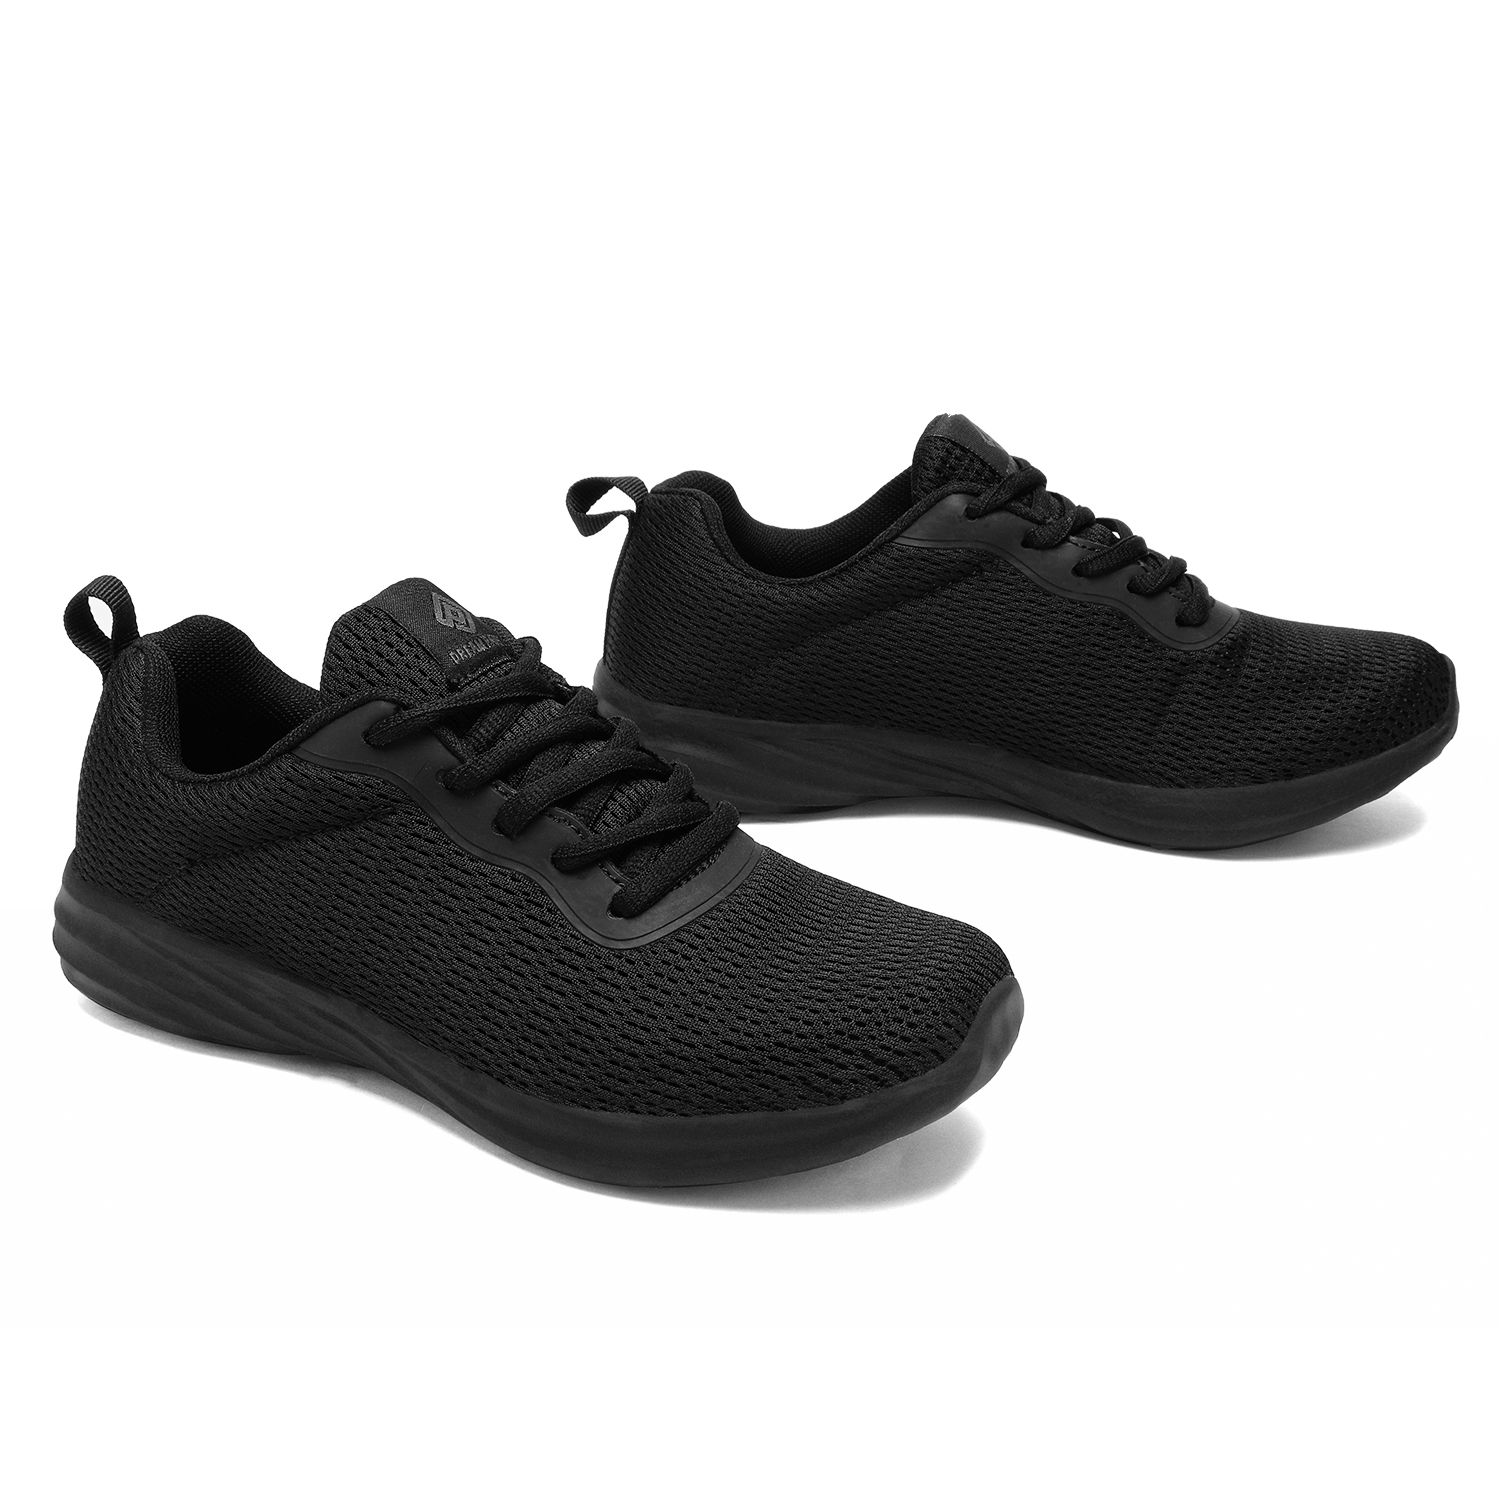 DREAM PAIRS Women/'s Running Tennis Shoes Lightweight Breathable Sneakers